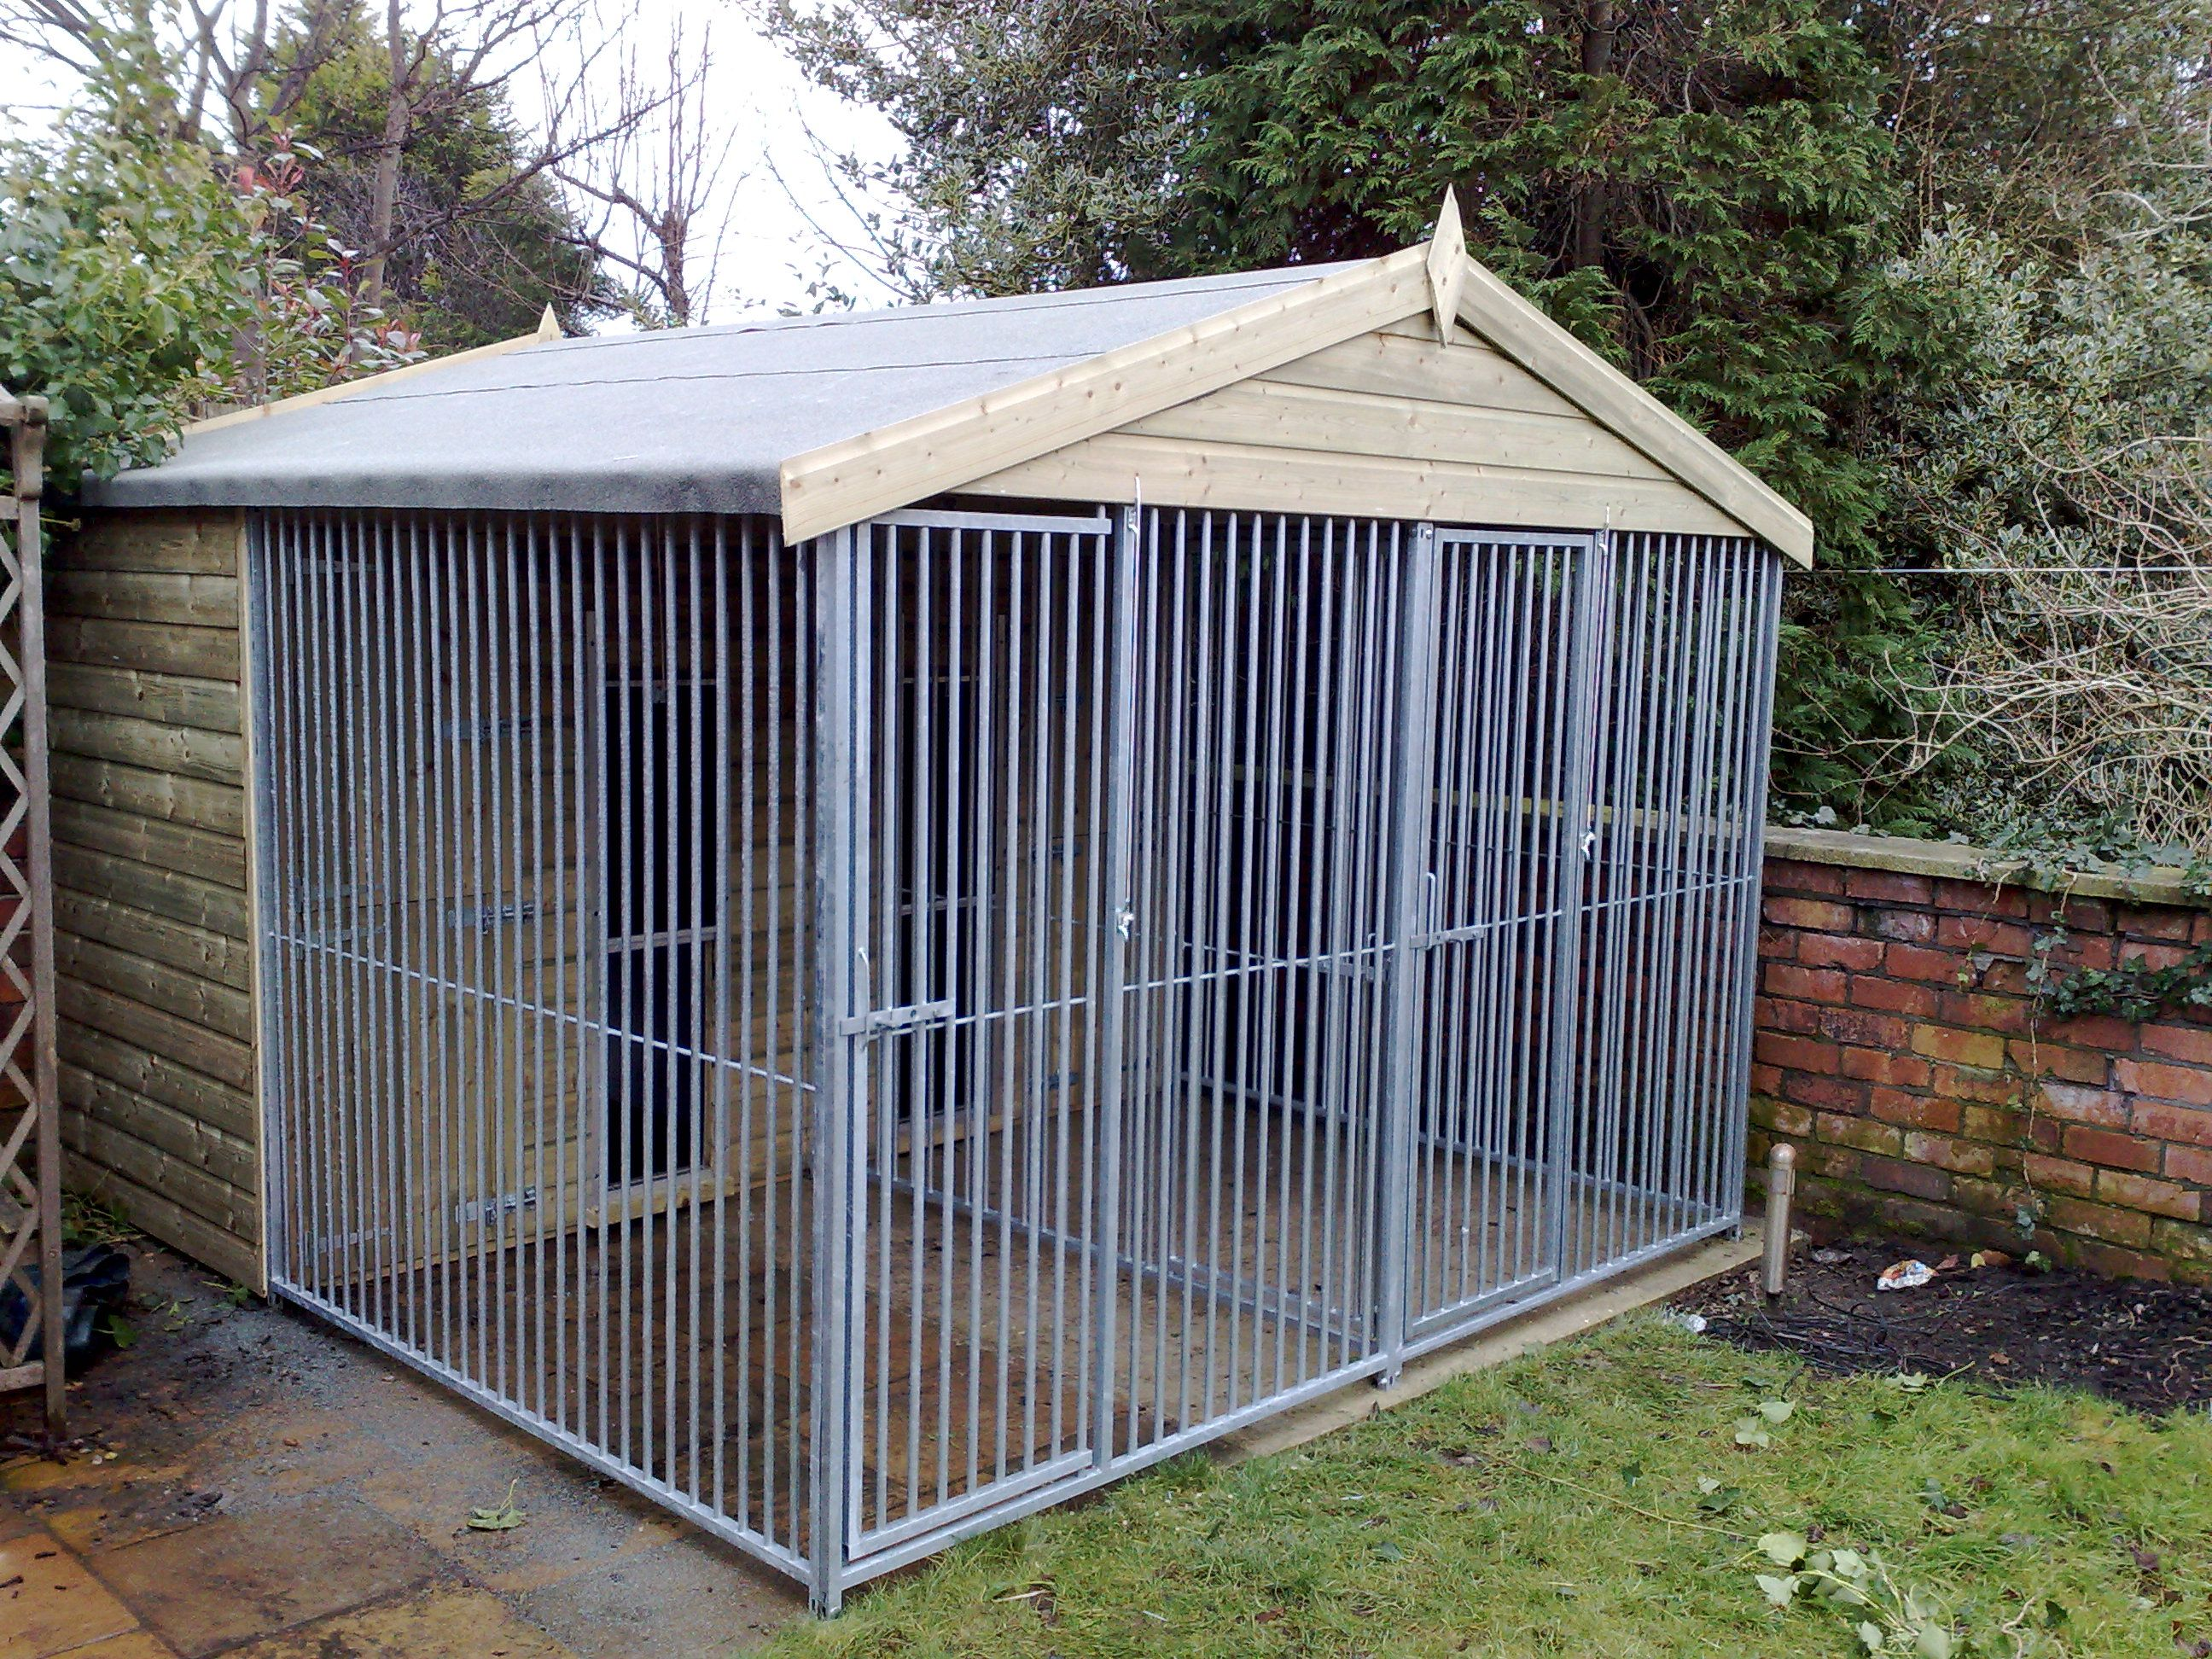 Pin By Boyds Bengals On Cat Enclosures Dog Kennel Outdoor Luxury Dog Kennels Dog Kennel Outdoor dog kennel roof ideas